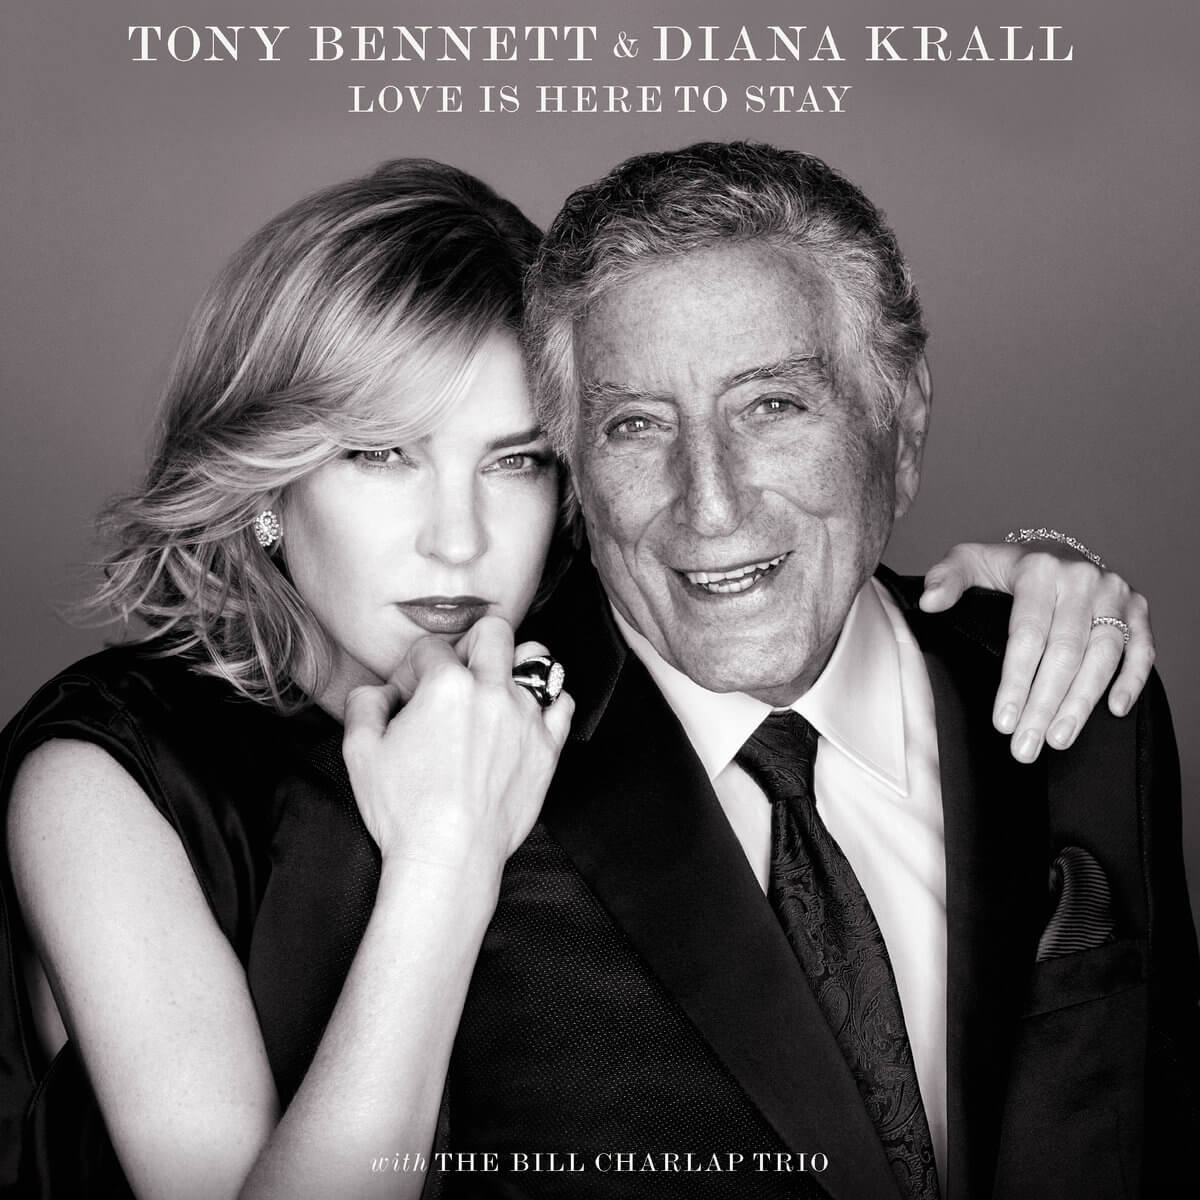 DIANA KRALL & TONY BENNETT - LOVE IS HERE TO SAY  LP